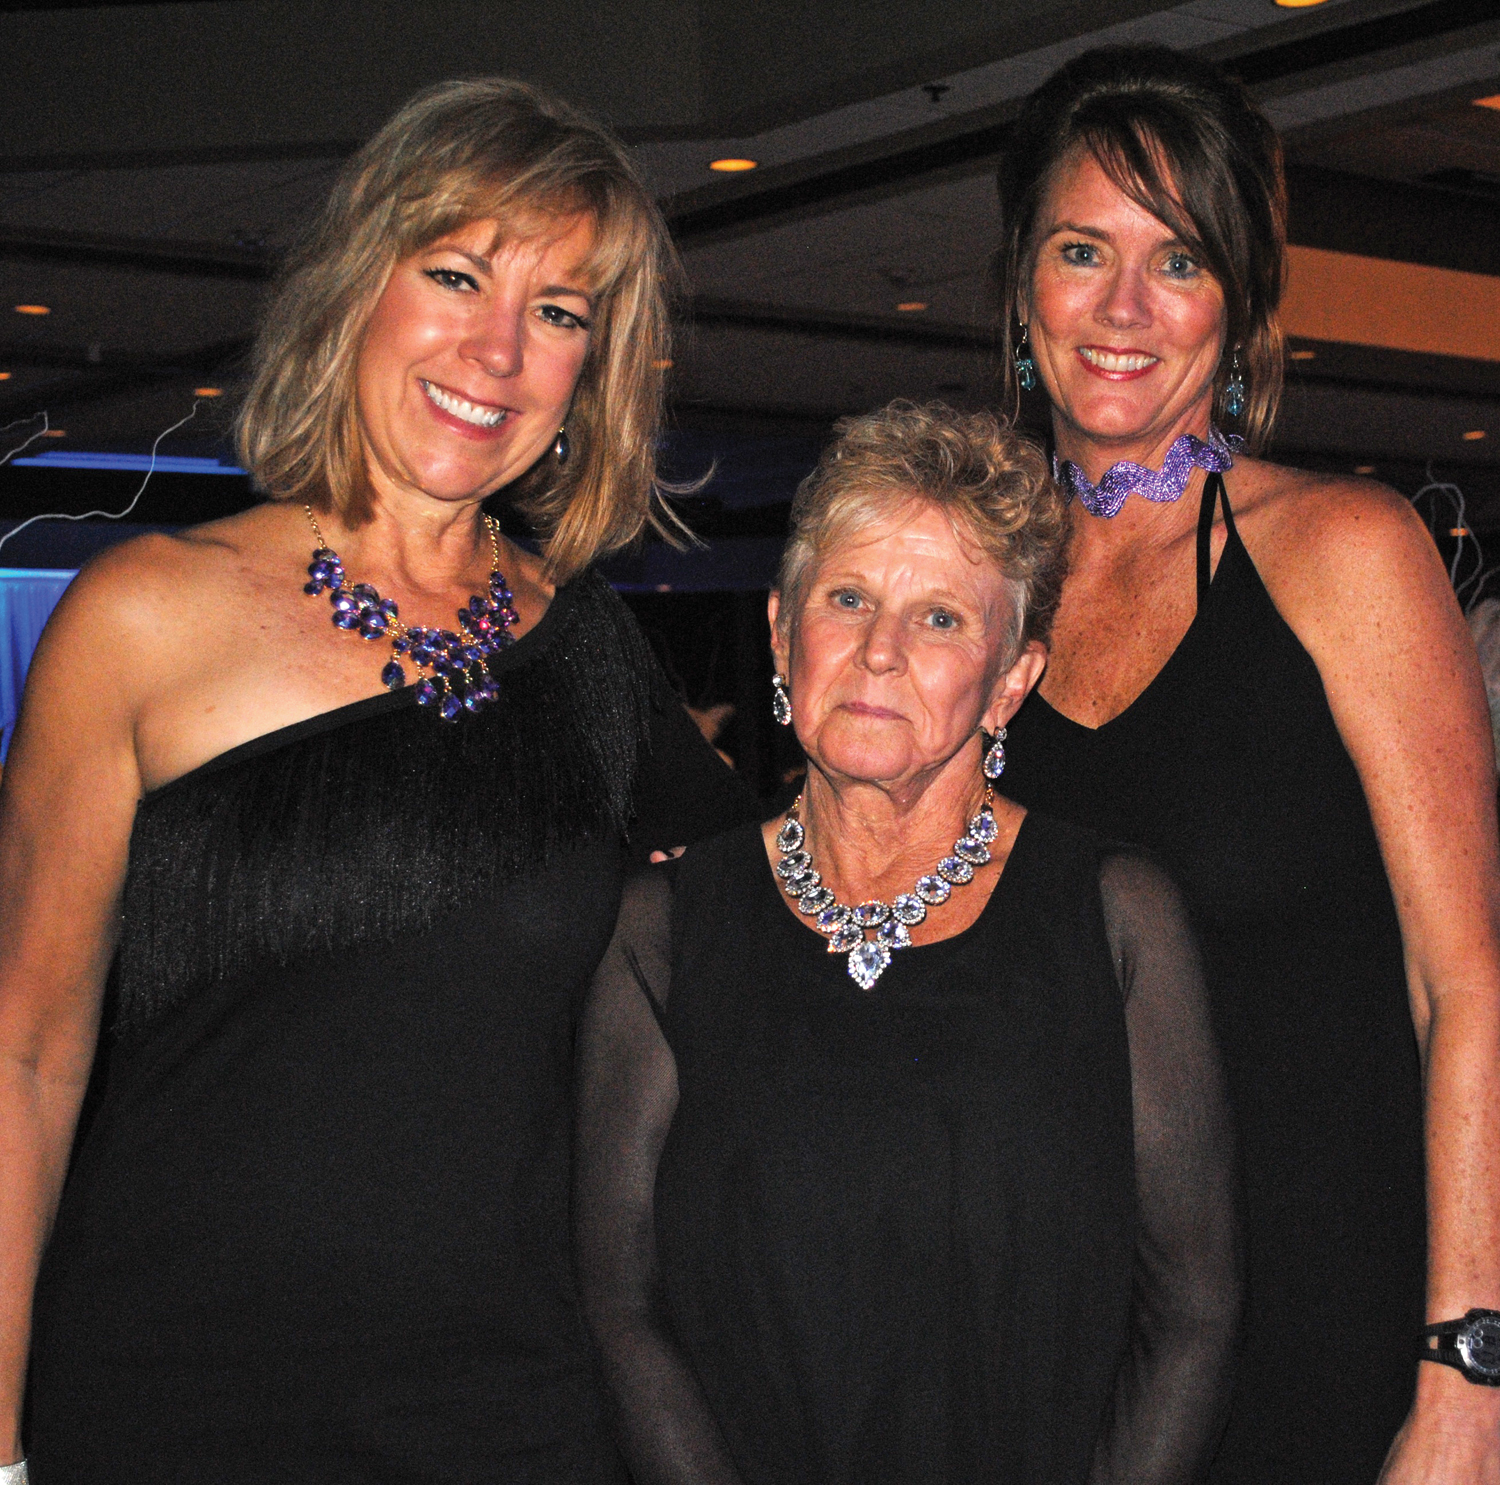 BATP Co-Founder Pam Merrill, center, receives congratulations on being a Cornerstone Honoree at the Purple and Teal Ball by emcee Carla Medlenka, left, and Ball Chairman Lisa Dishman.